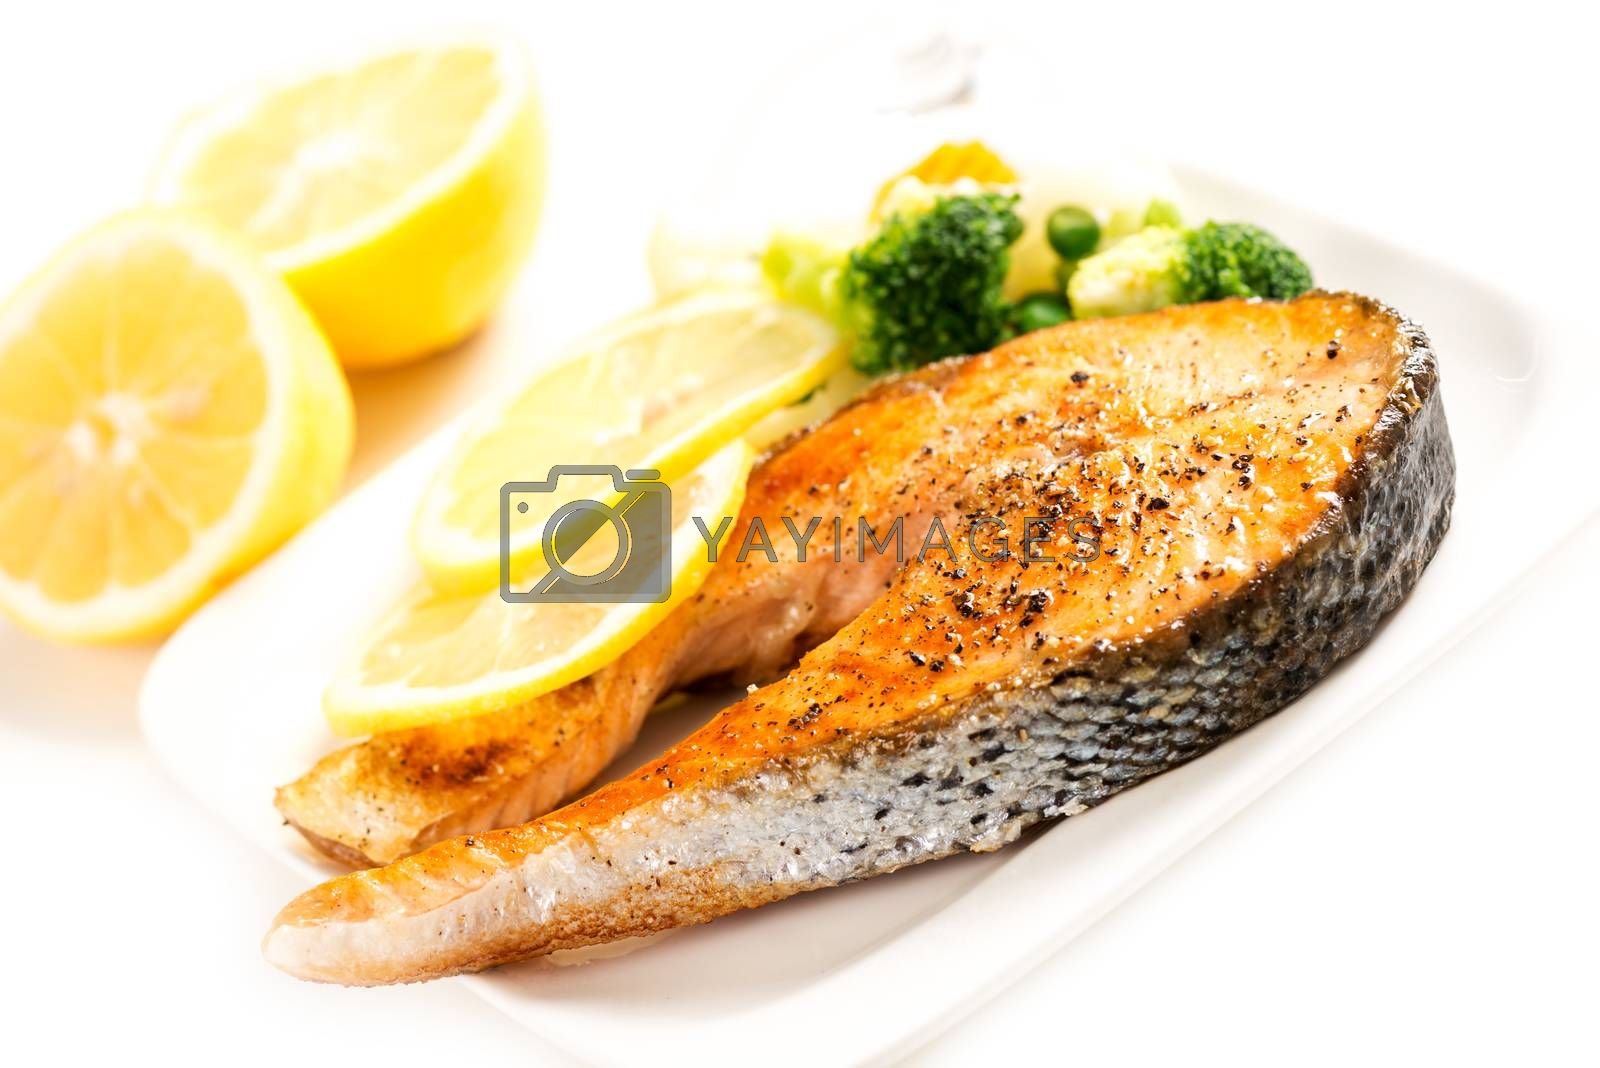 Grilled salmon and vegetables on plate with lemon by Nanisimova